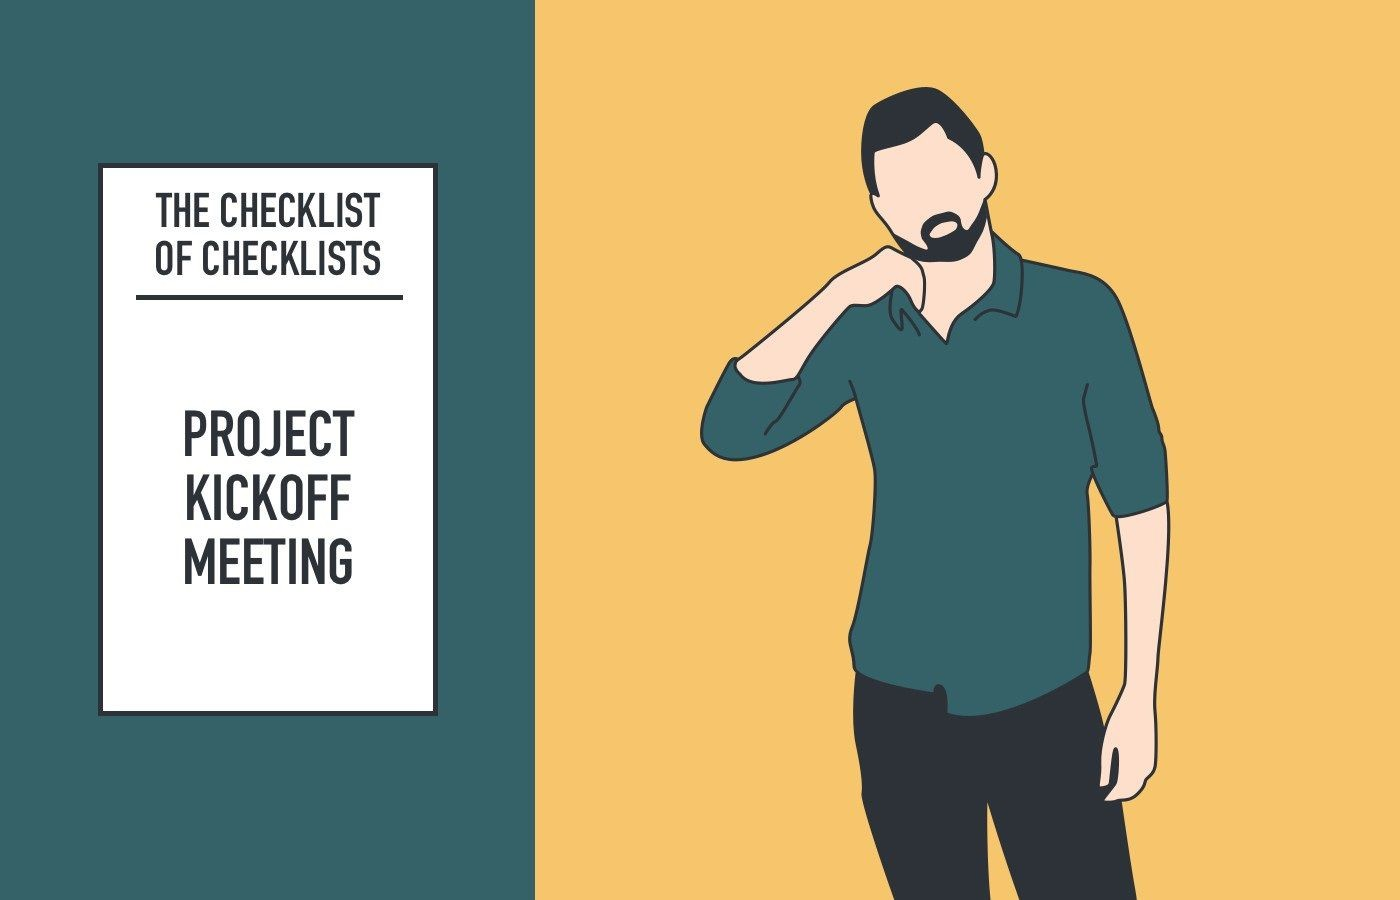 000 Beautiful Project Management Kickoff Meeting Agenda Template Concept 1400